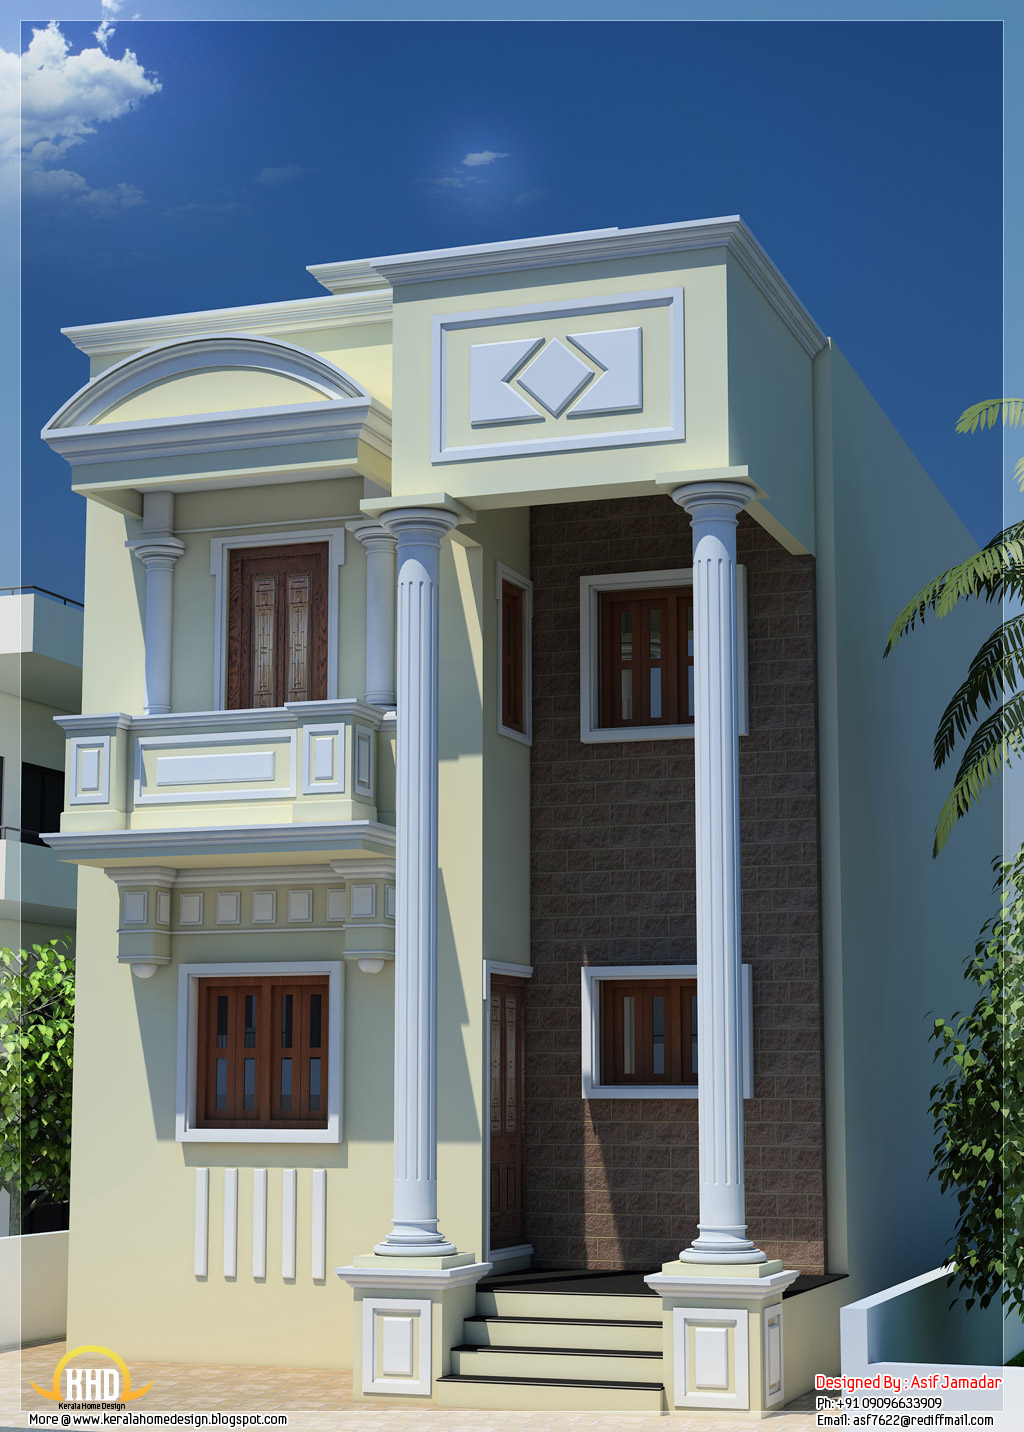 1600 sq ft narrow house design in india home appliance for Indian house designs for 800 sq ft